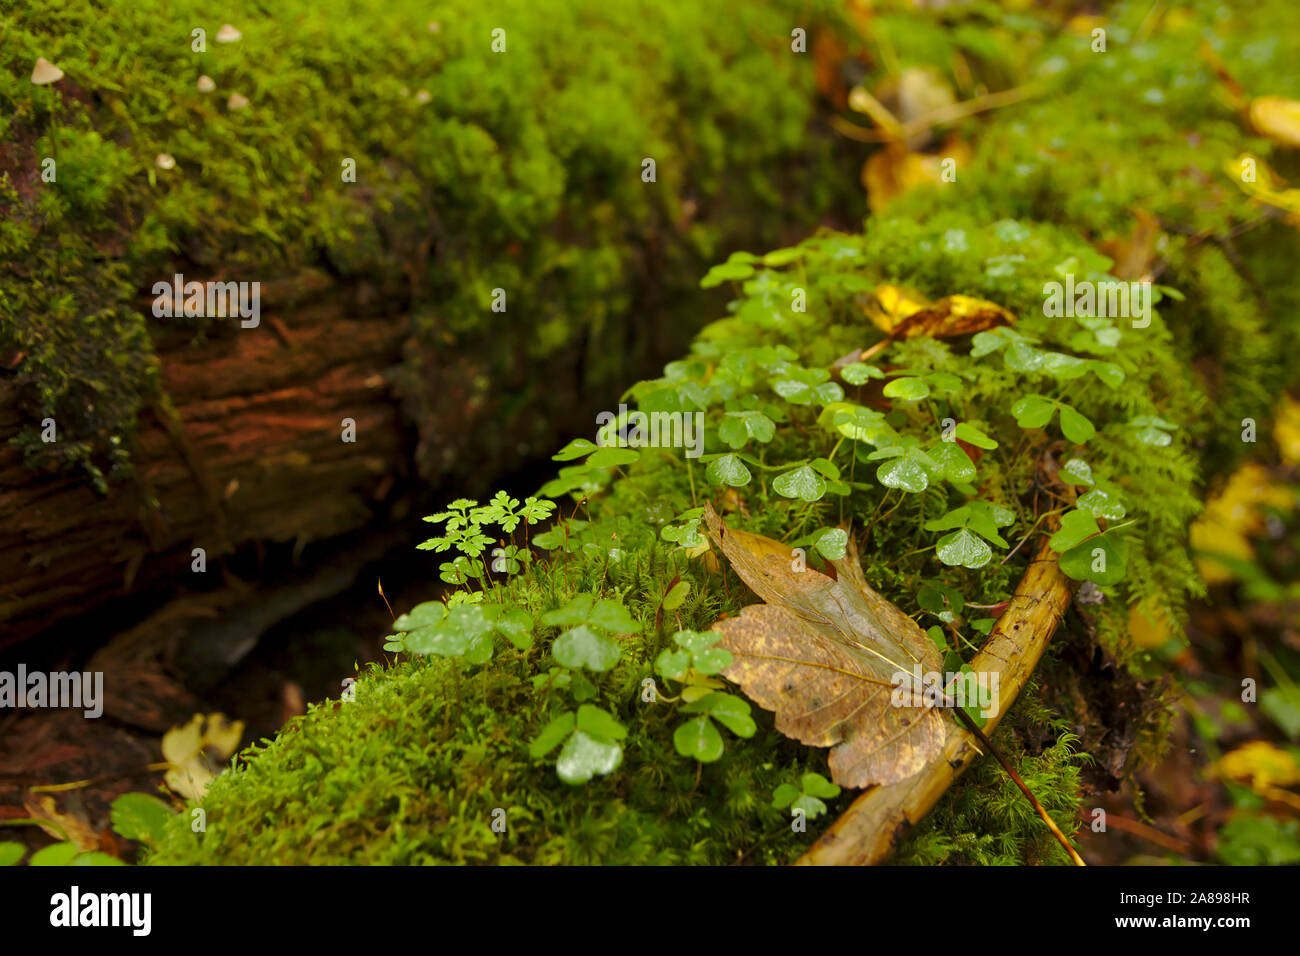 Clover and moss on deadwood, Haslachschlucht near Lenzkirch,  autumn, Black Forest, Germany Stock Photo